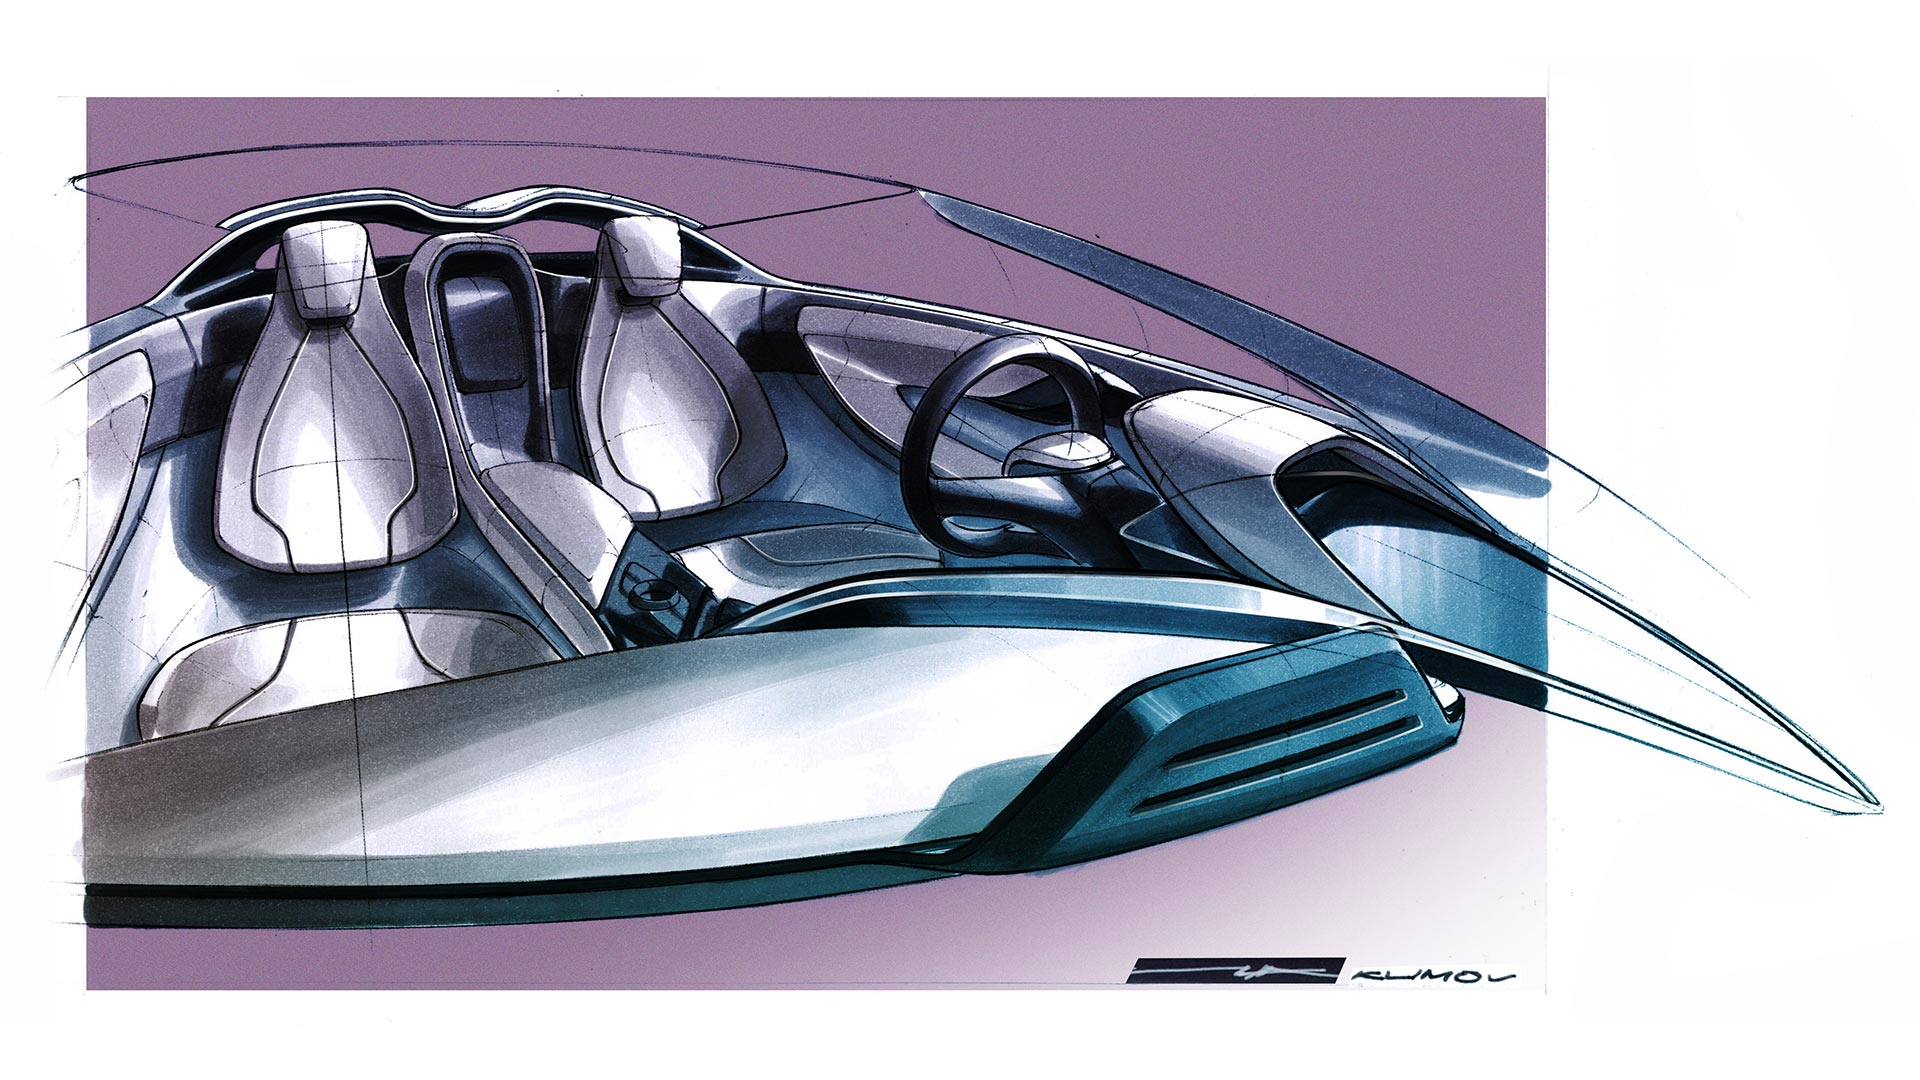 Bmw I8 Concept Spyder Interior Design Sketch Car Body Design